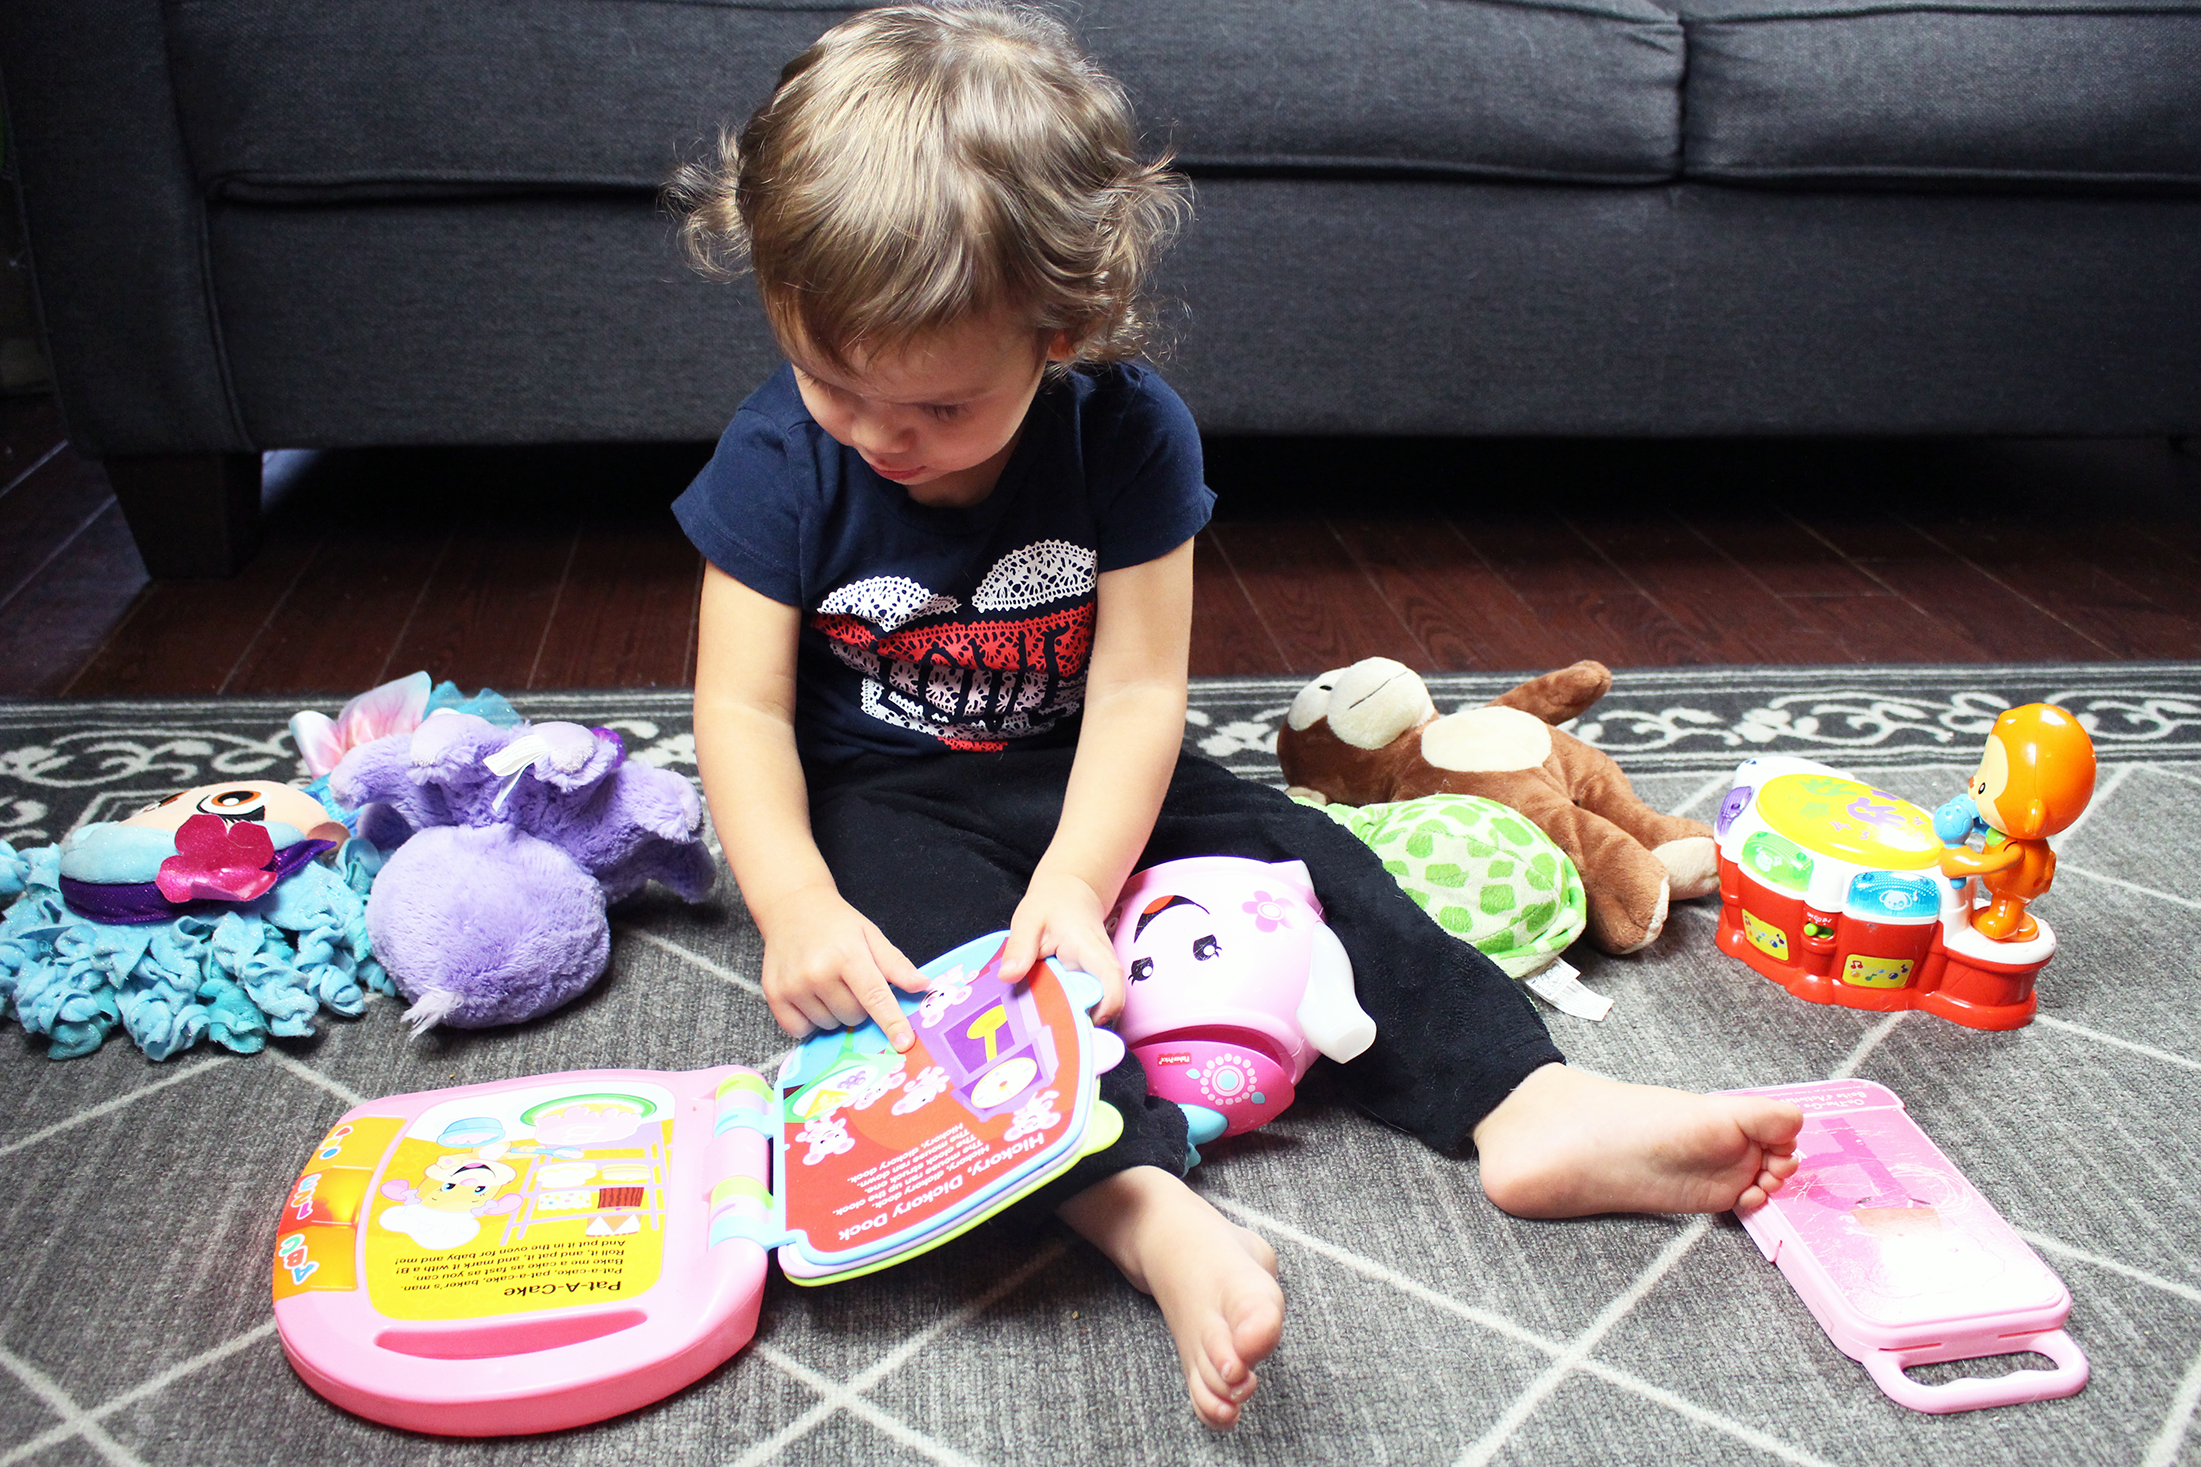 Toddlers: Keeping Them Safe in The Home With These Simple Tips and Budget-Friendly Options